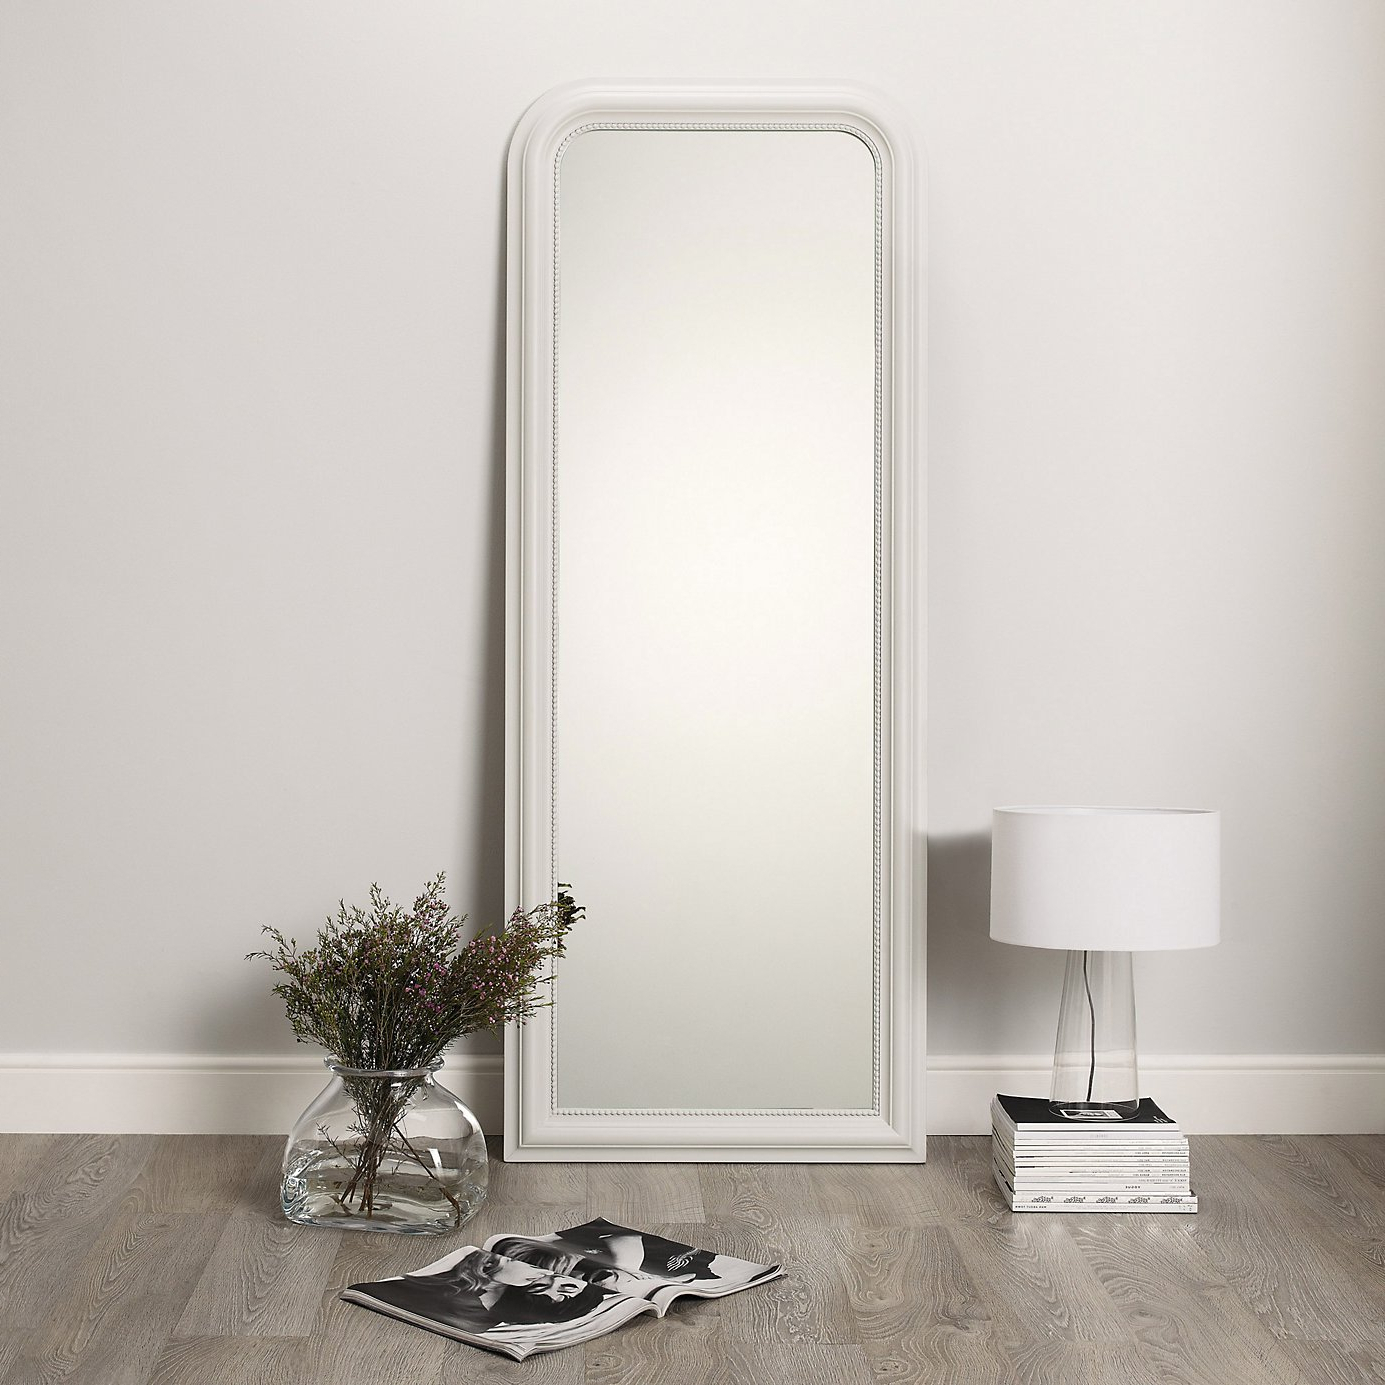 Full Length Decorative Wall Mirrors Strong Wooden Material Modern With Regard To Favorite Full Length Decorative Wall Mirrors (View 6 of 20)